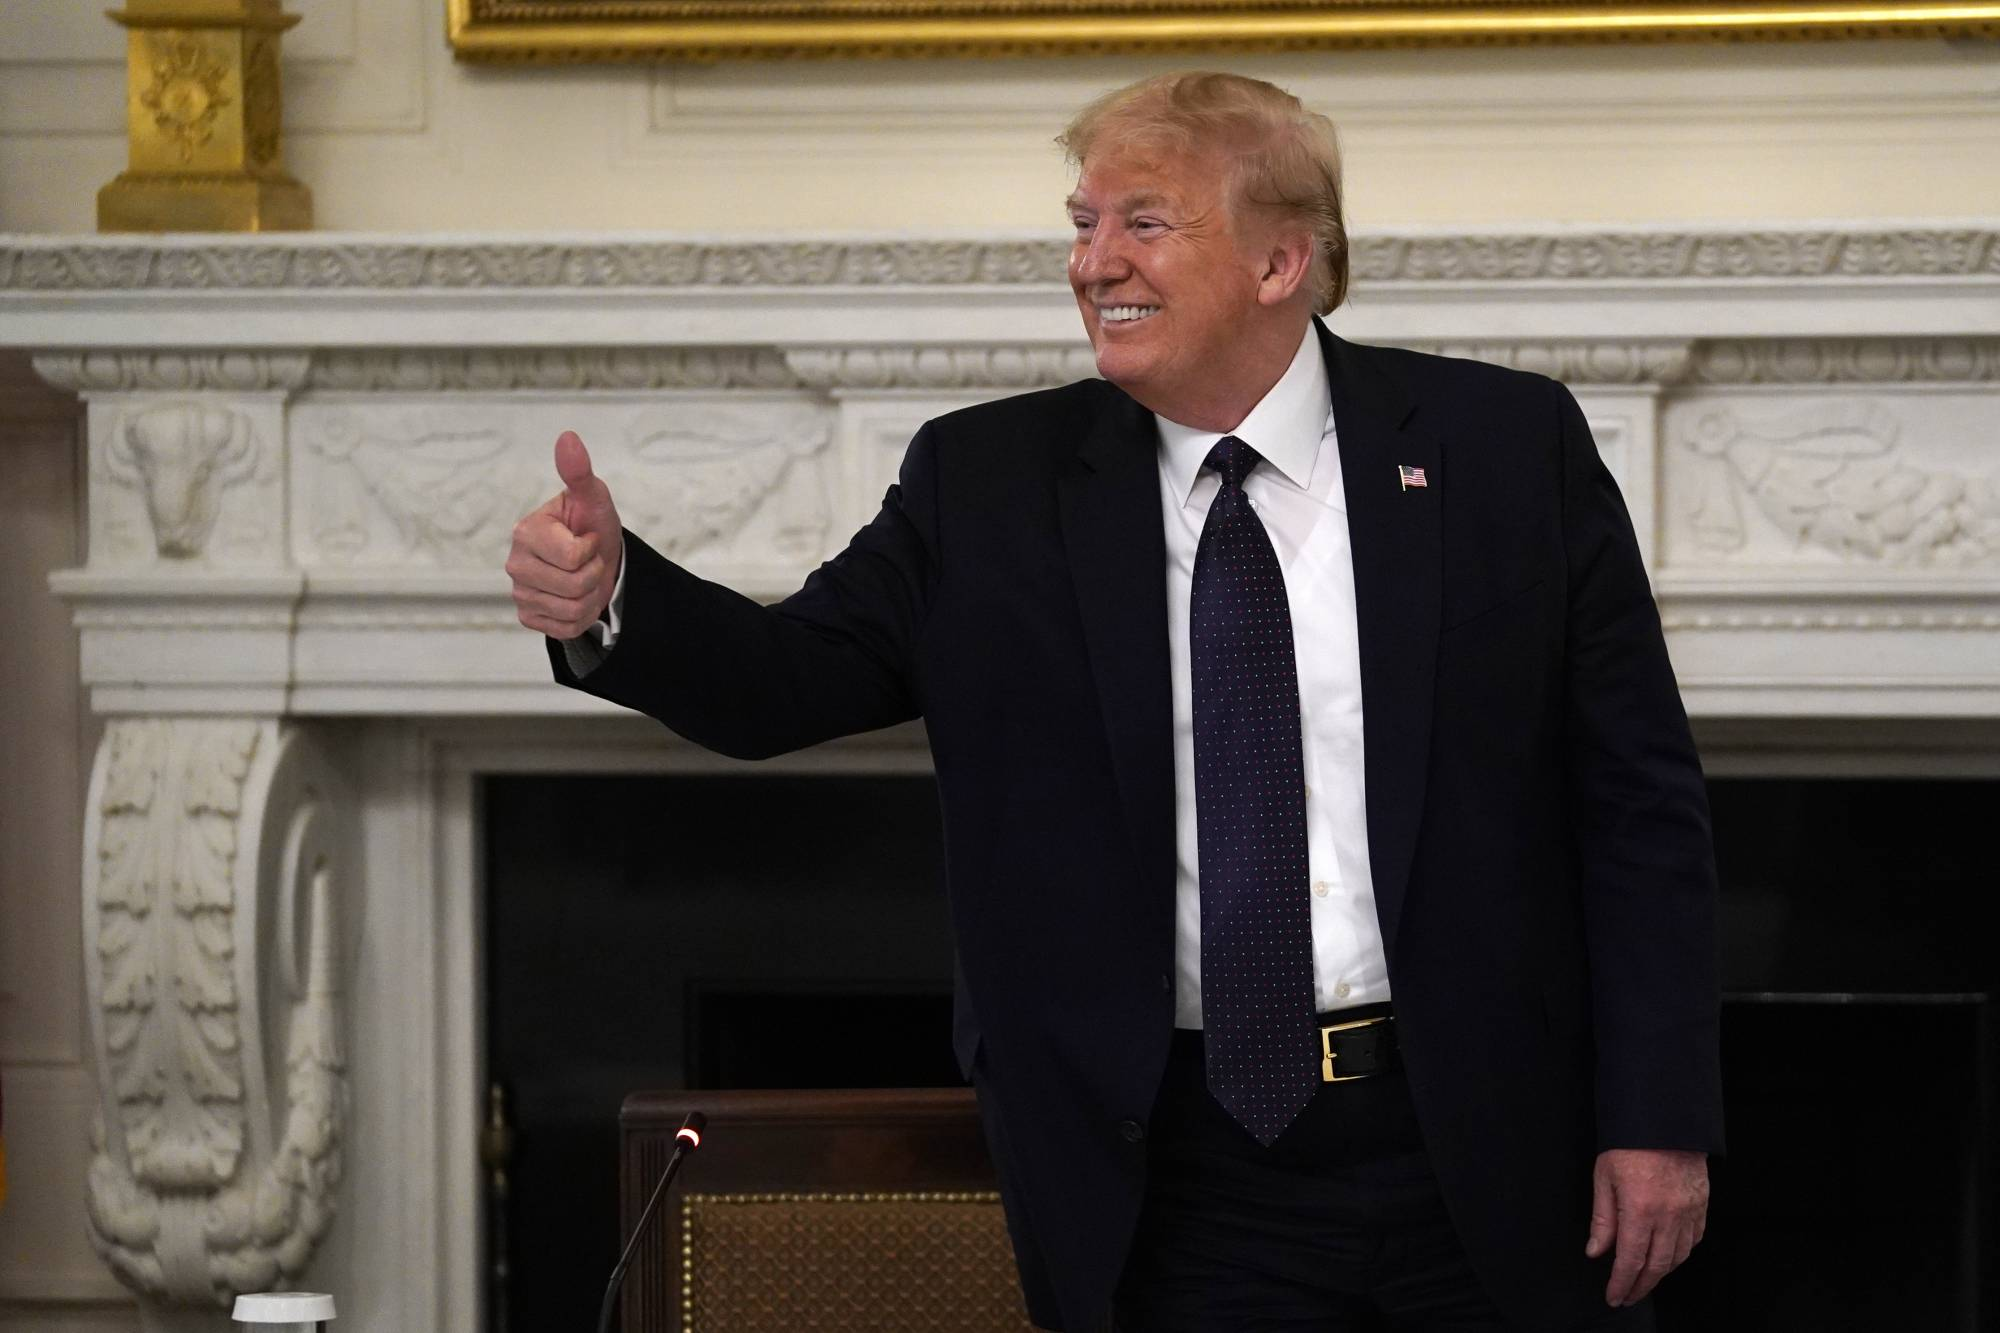 U.S. President Donald Trump gestures as he leaves a meeting with restaurant industry executives about the coronavirus response, in the State Dining Room of the White House on Monday.  | AP